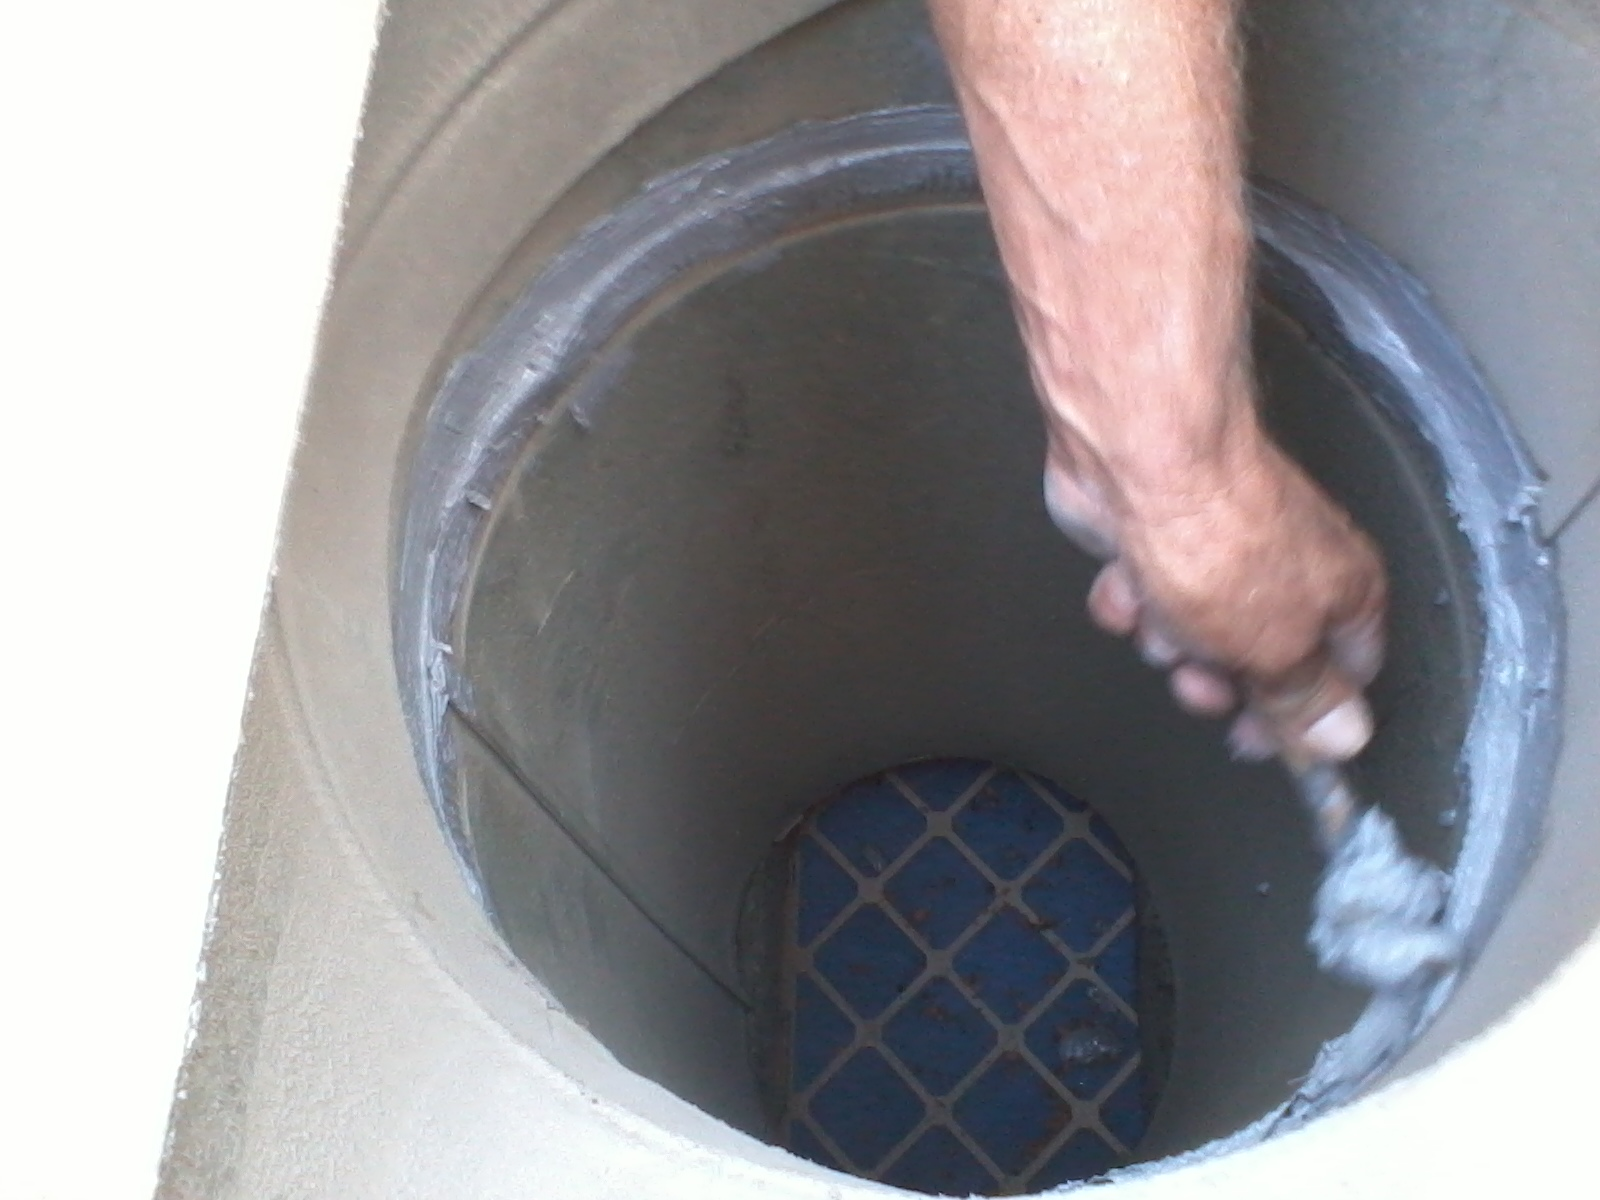 We seal all duct connections like this with an approved duct sealant